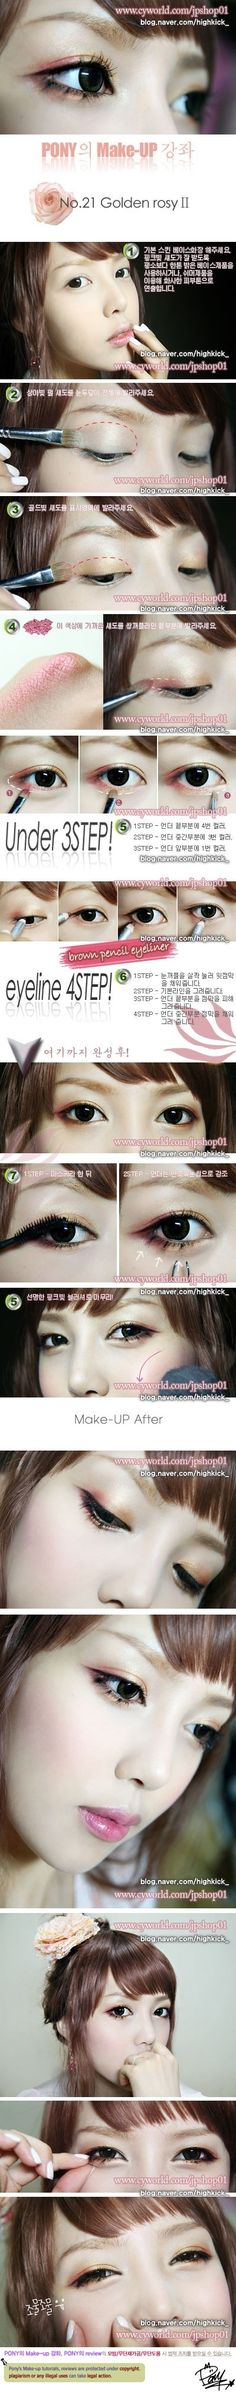 Ulzzang Pony Makeup Tutorial - Golden Rosy II